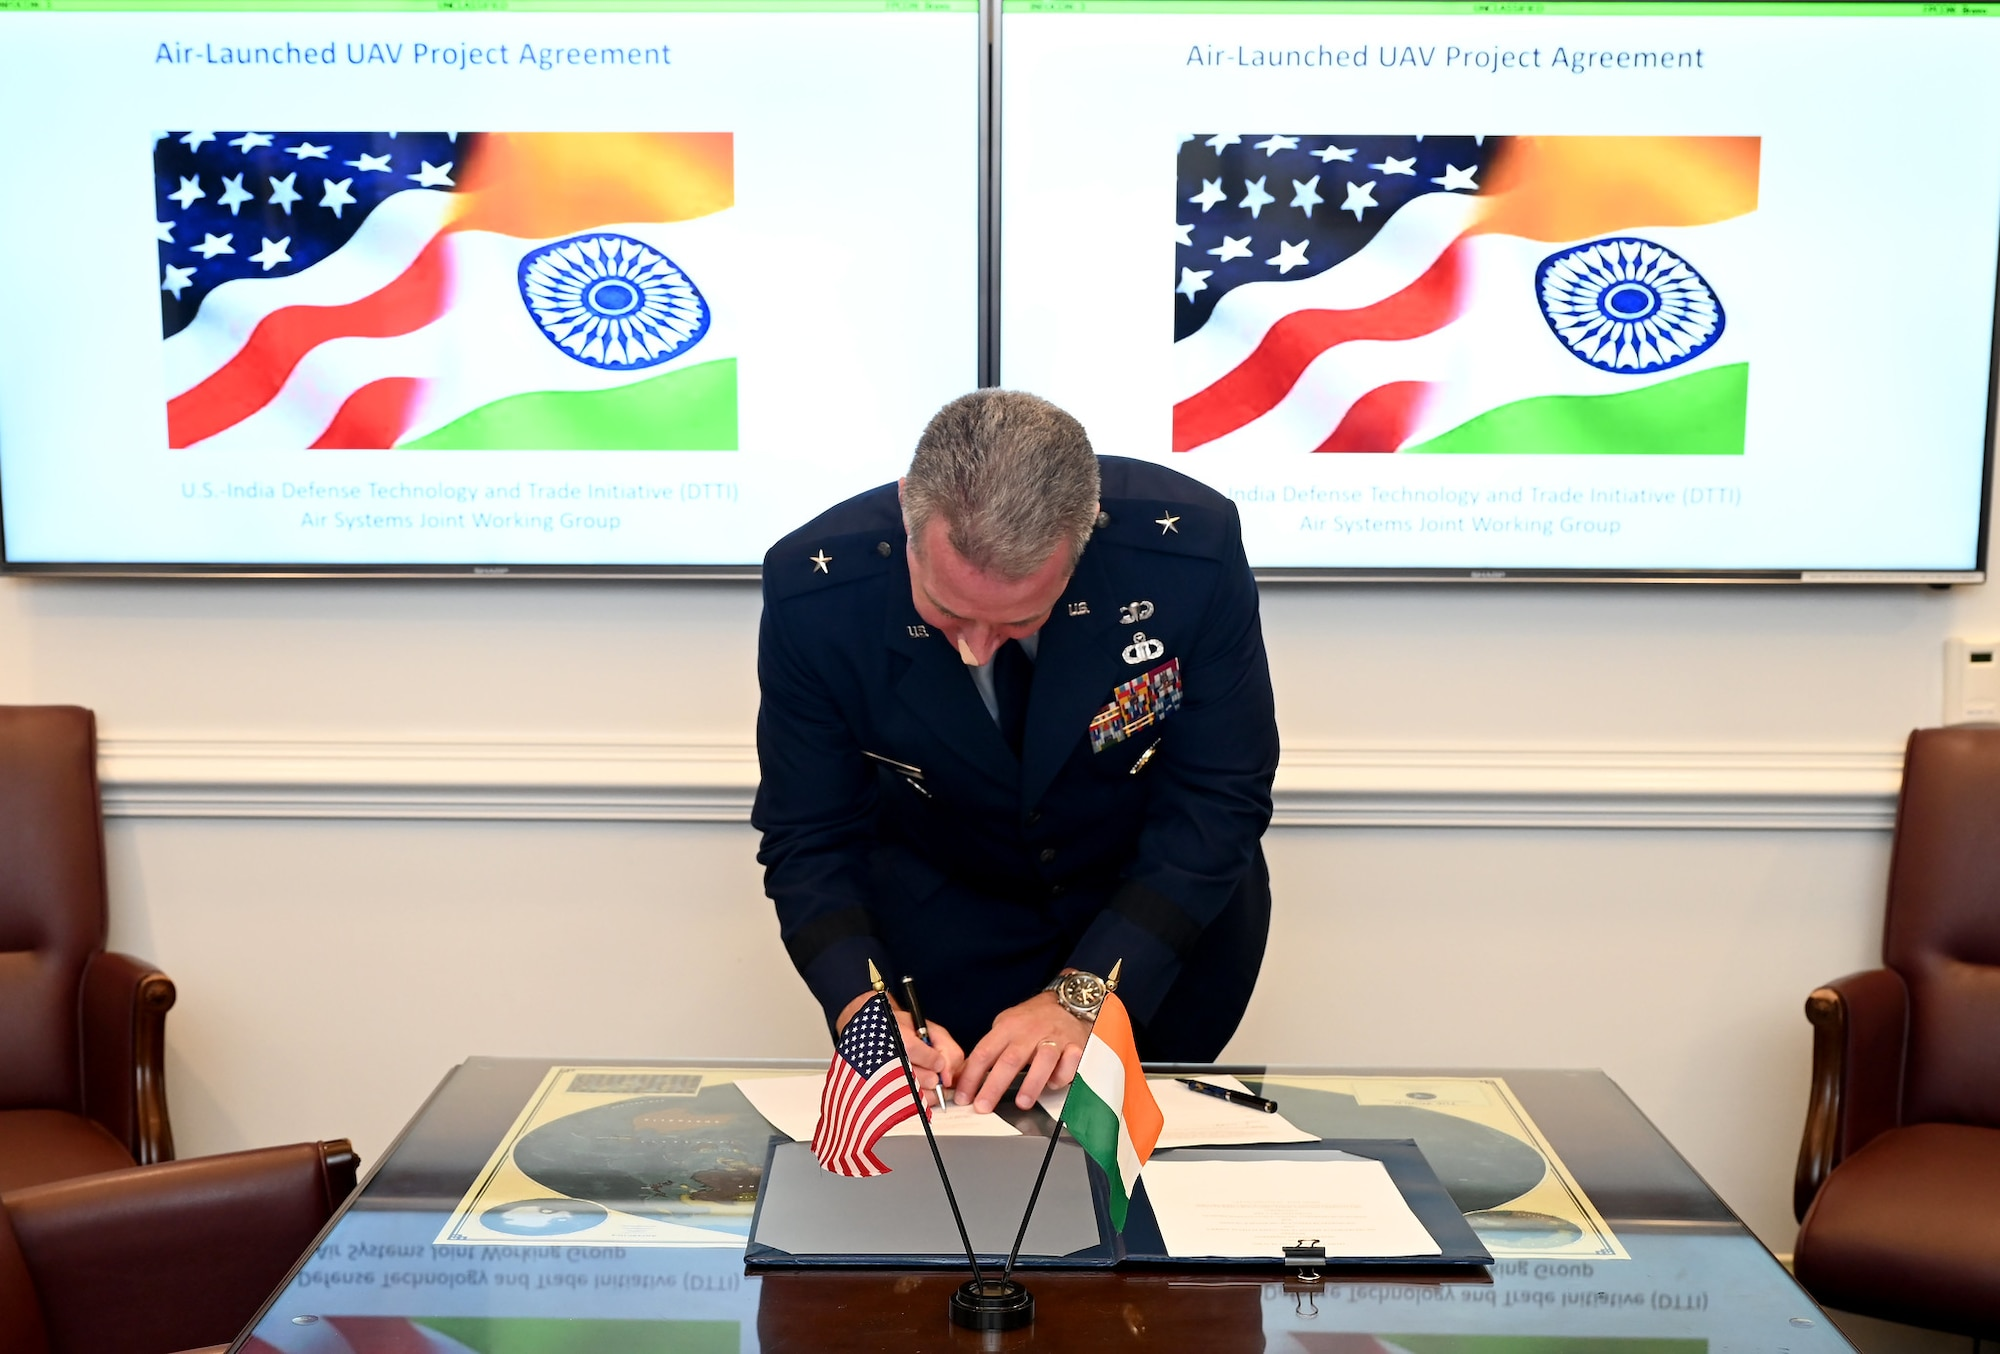 Cochair of the US-India Defense Technology and Trade Initiative, Brig. Gen. Brian Bruckbauer signs the Air Launched UAV Co-Development Agreement at the Pentagon, Arlington, Va., July 16, 2021. (U.S. Air Force photo by Andy Morataya)